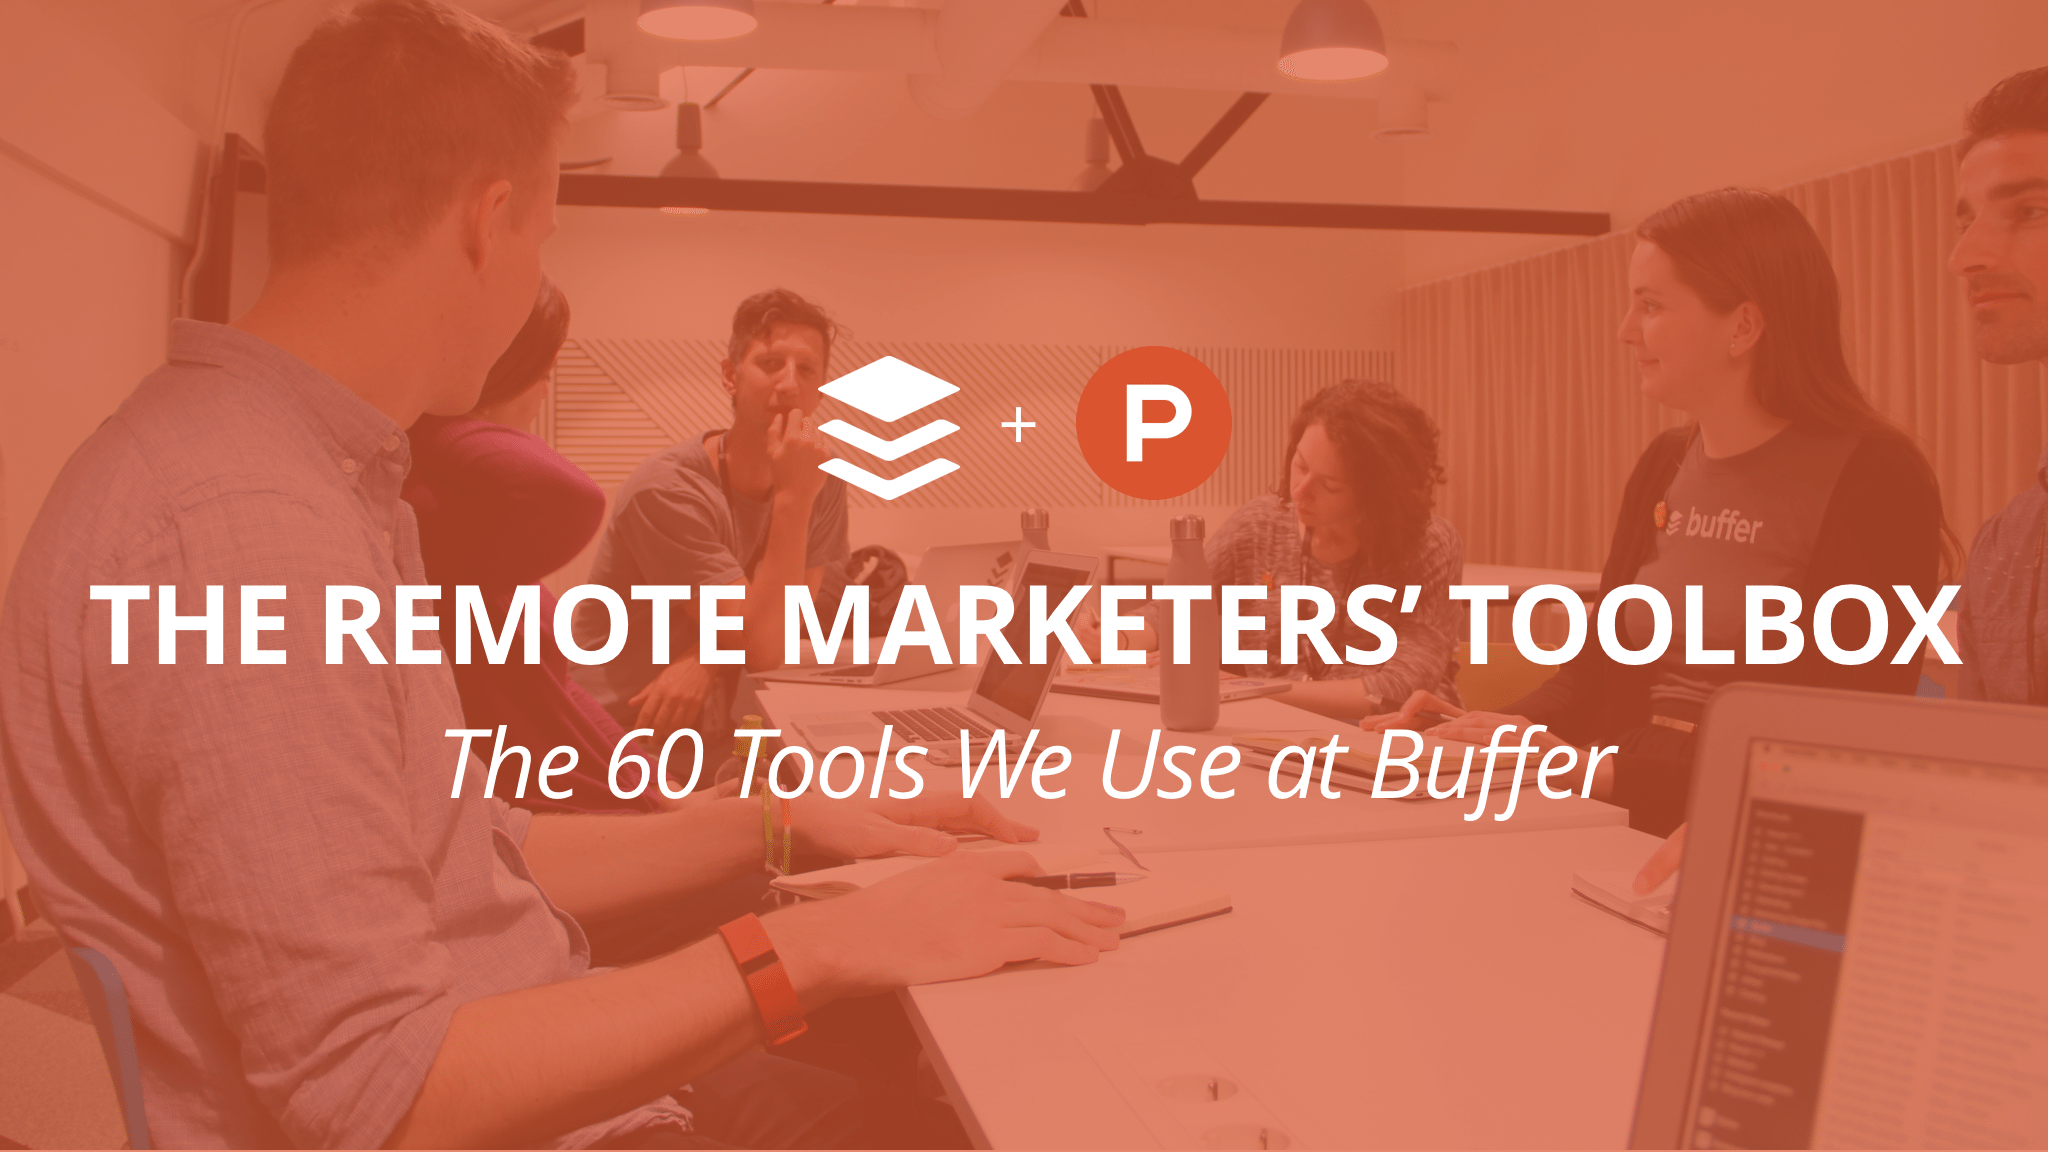 The Marketer's Toolbox: The 60 Marketing Tools We Use at Buffer